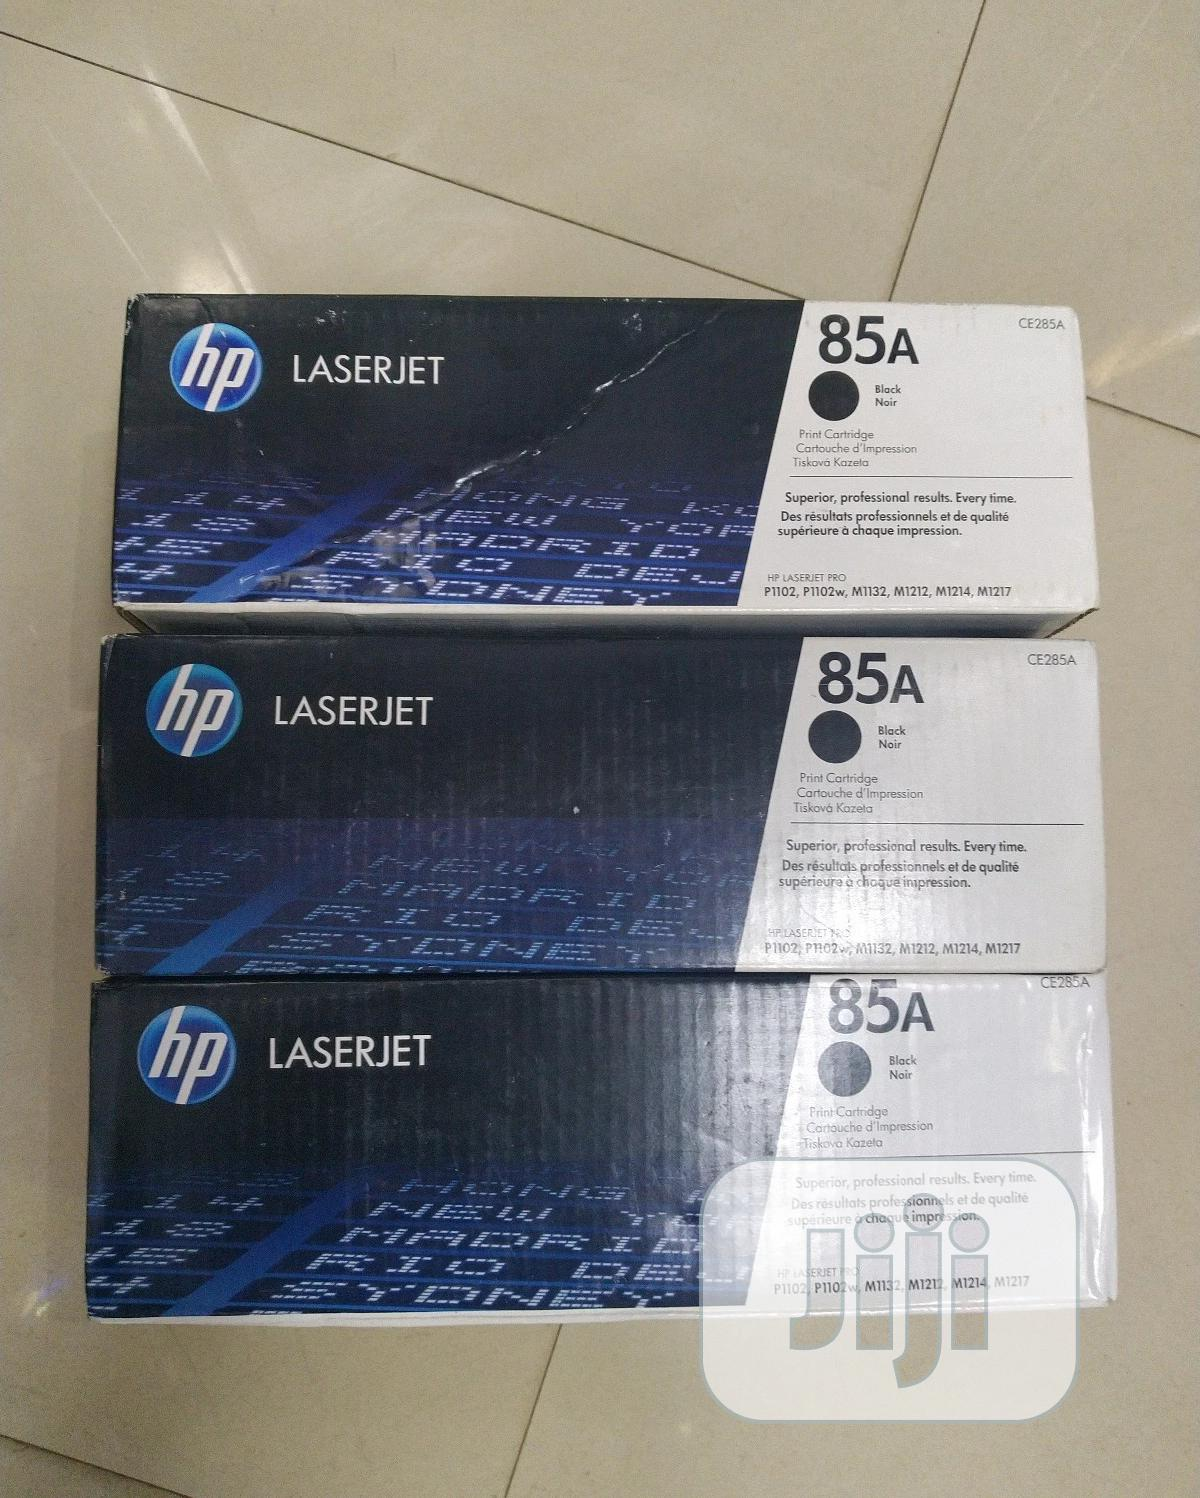 HP Laserjet 85A Black Original Toner Cartridge | Accessories & Supplies for Electronics for sale in Wuse 2, Abuja (FCT) State, Nigeria